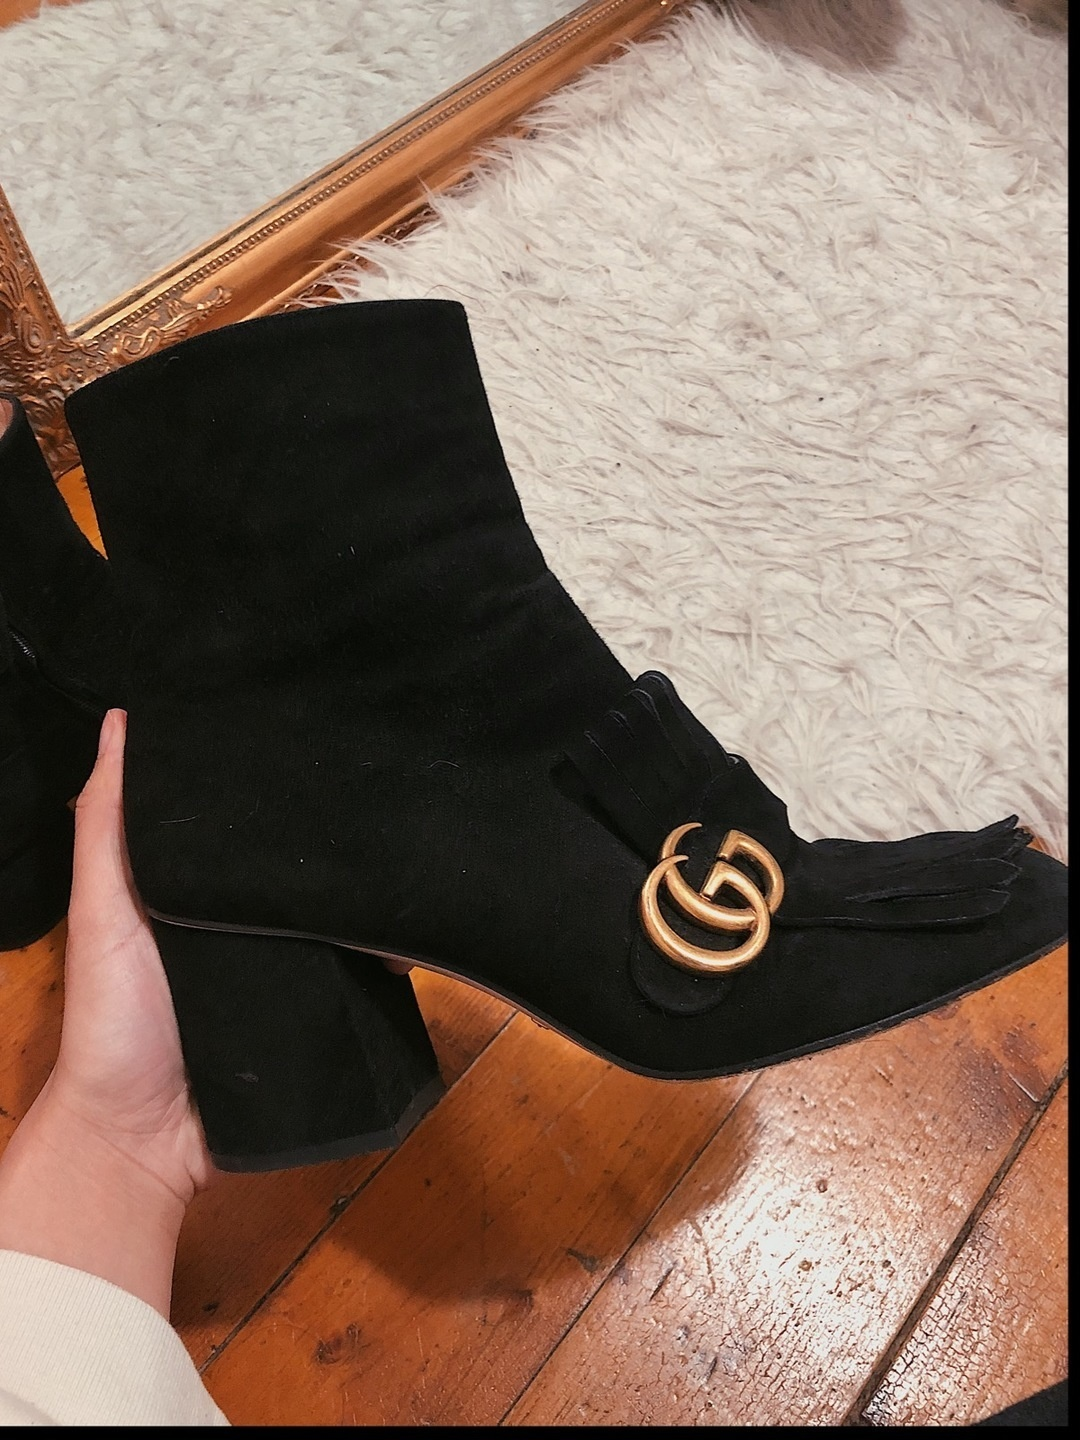 Women's boots - GUCCI photo 1